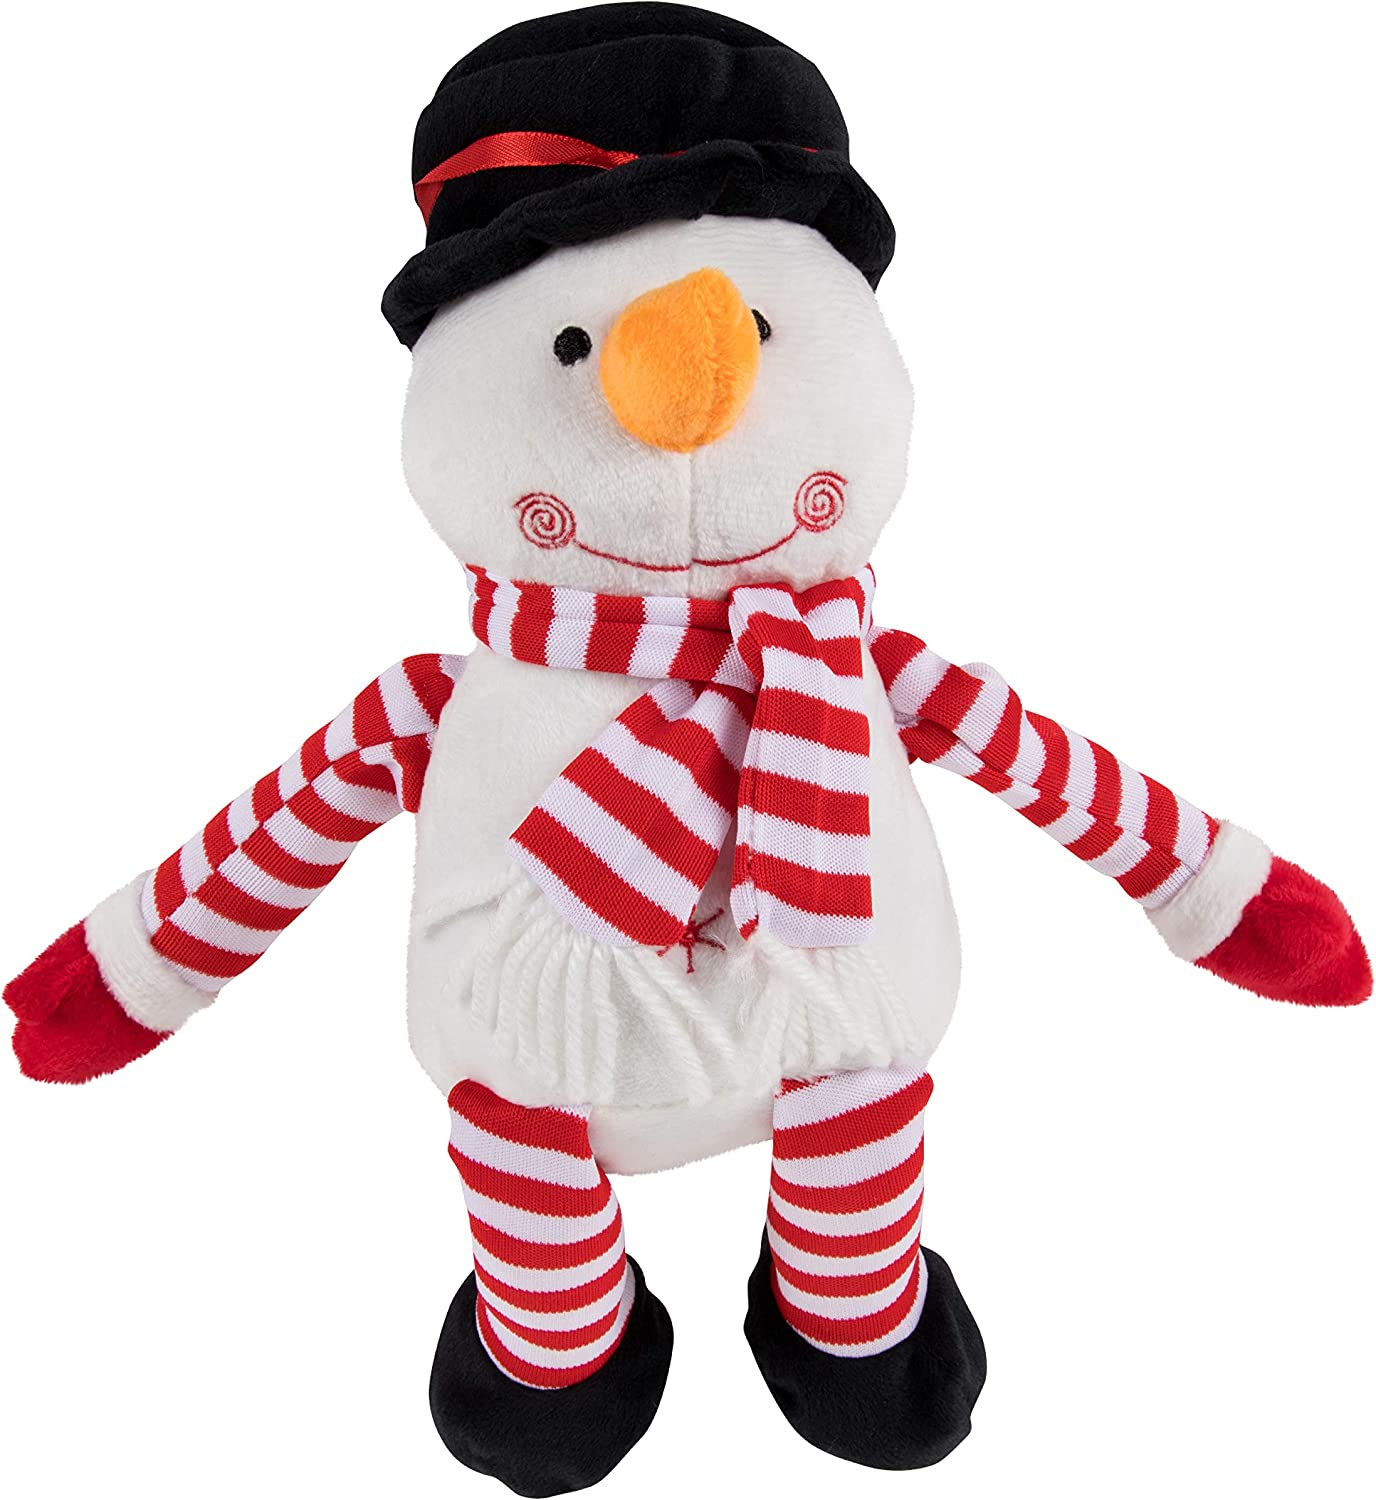 Snowman Plush Toy - Blizzard The Snowman Kids Soft Stuffed Toy, Fun Christmas Holiday Party Gifts for Girls and Boys, Festive Decoration, White, 7.7 x 7 Inches